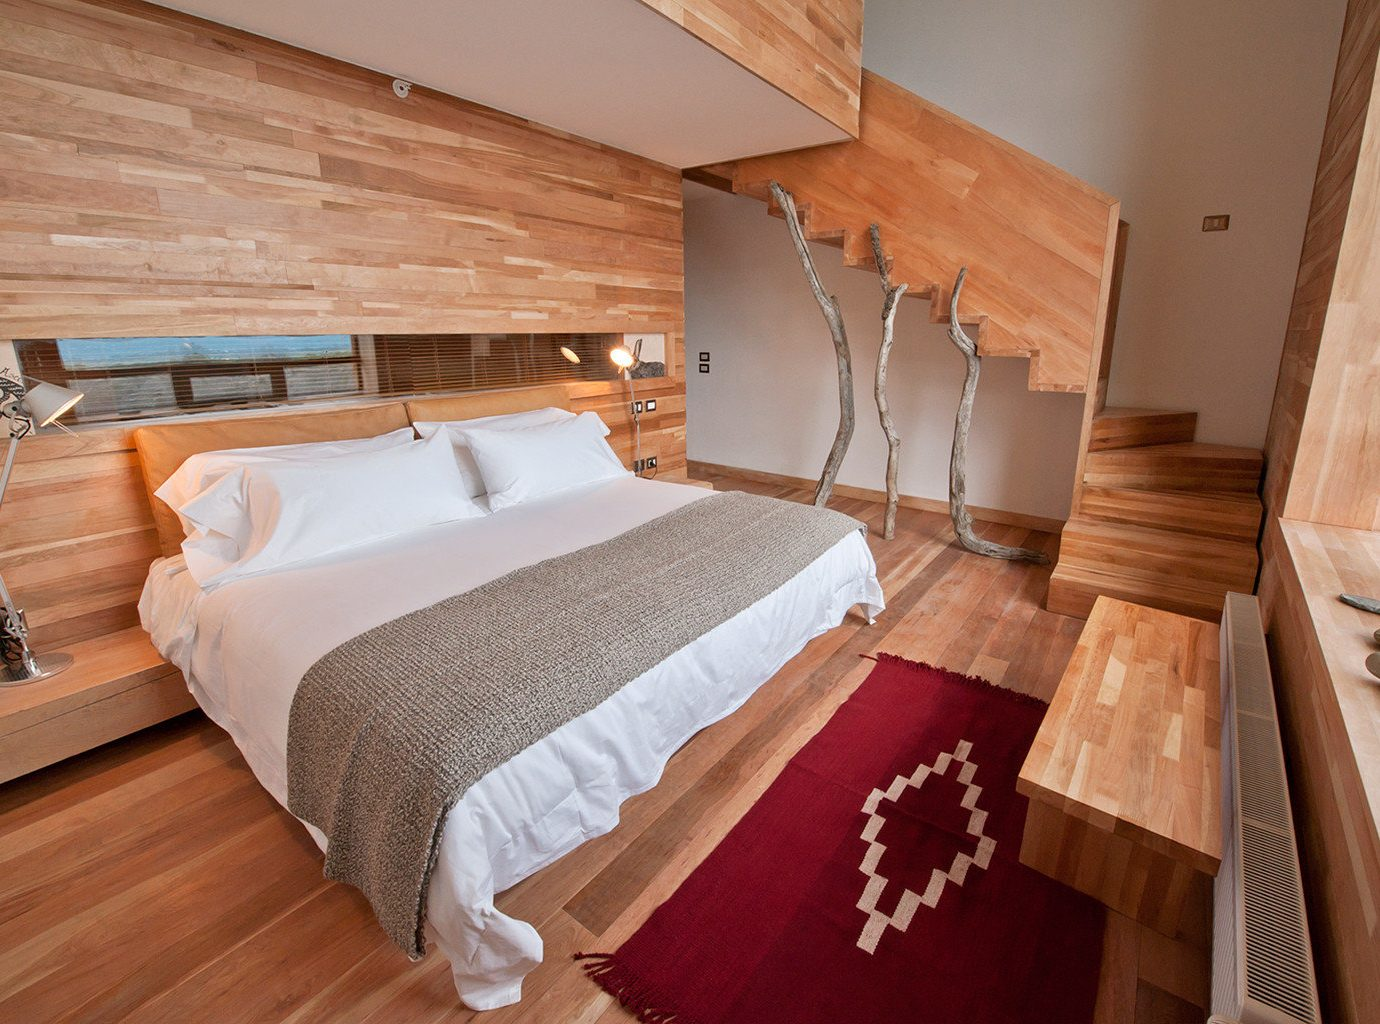 All-Inclusive Resorts Bedroom Elegant Hip Hotels Luxury Modern Romantic Hotels Suite indoor bed floor wall room property cottage hardwood wooden real estate estate apartment wood